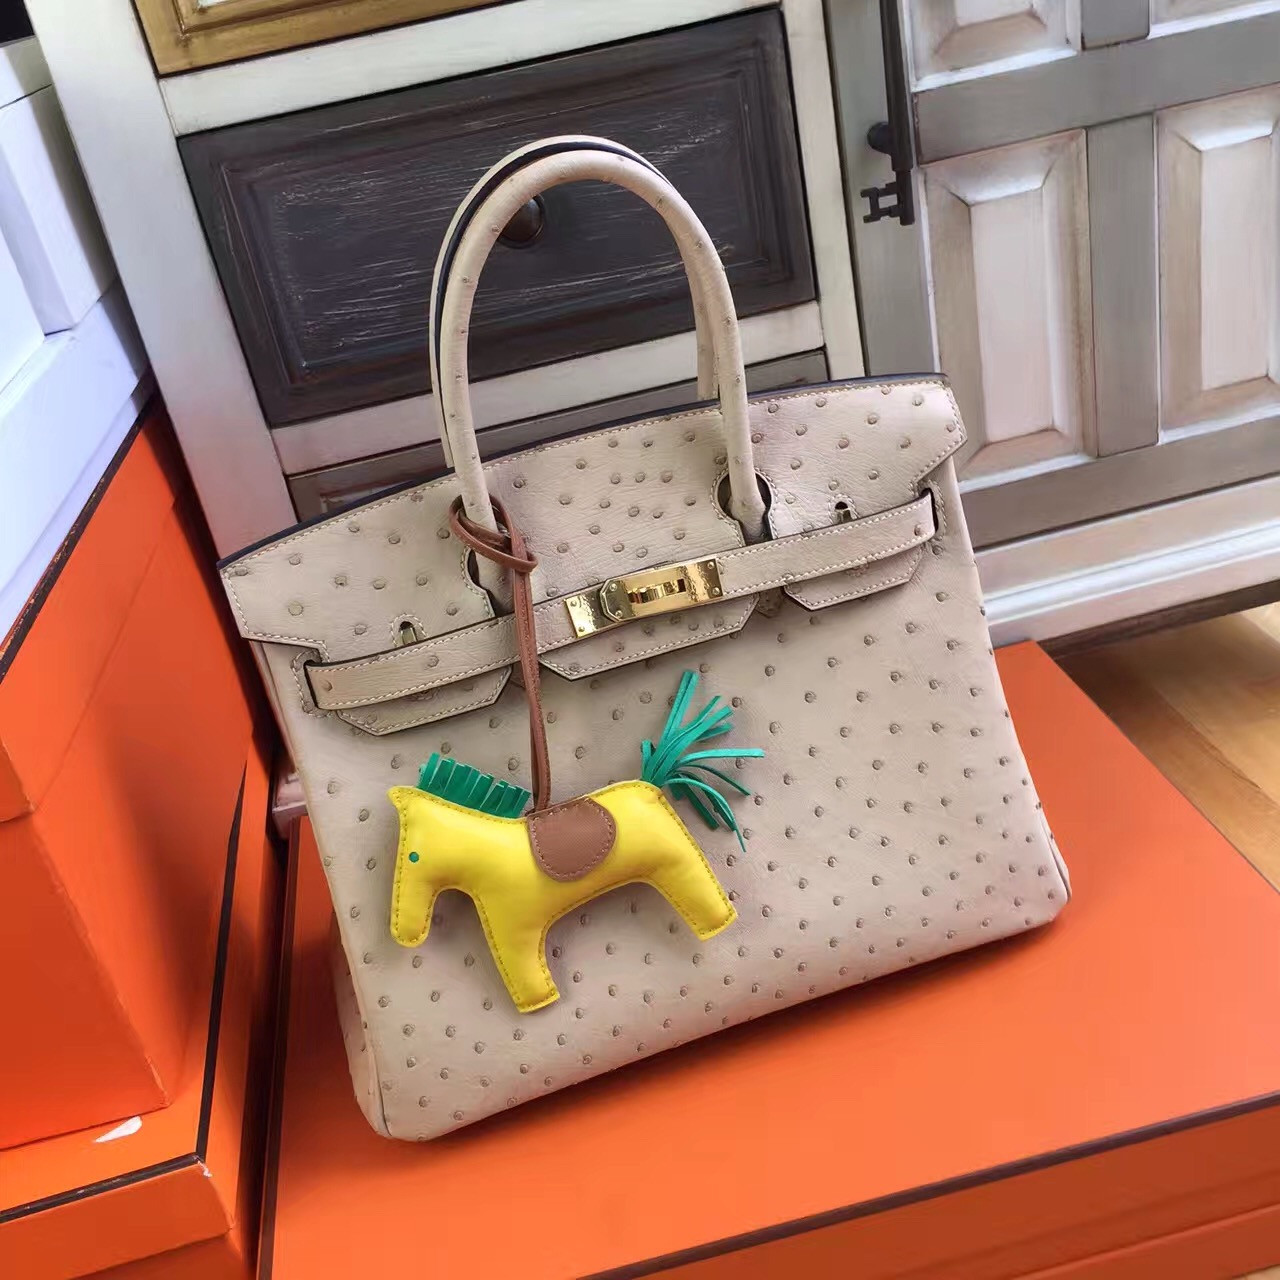 7a7e72b5652f Hermes 3C Wool White Birkin Bag 25cm KK Ostrich Leather Palladium ...